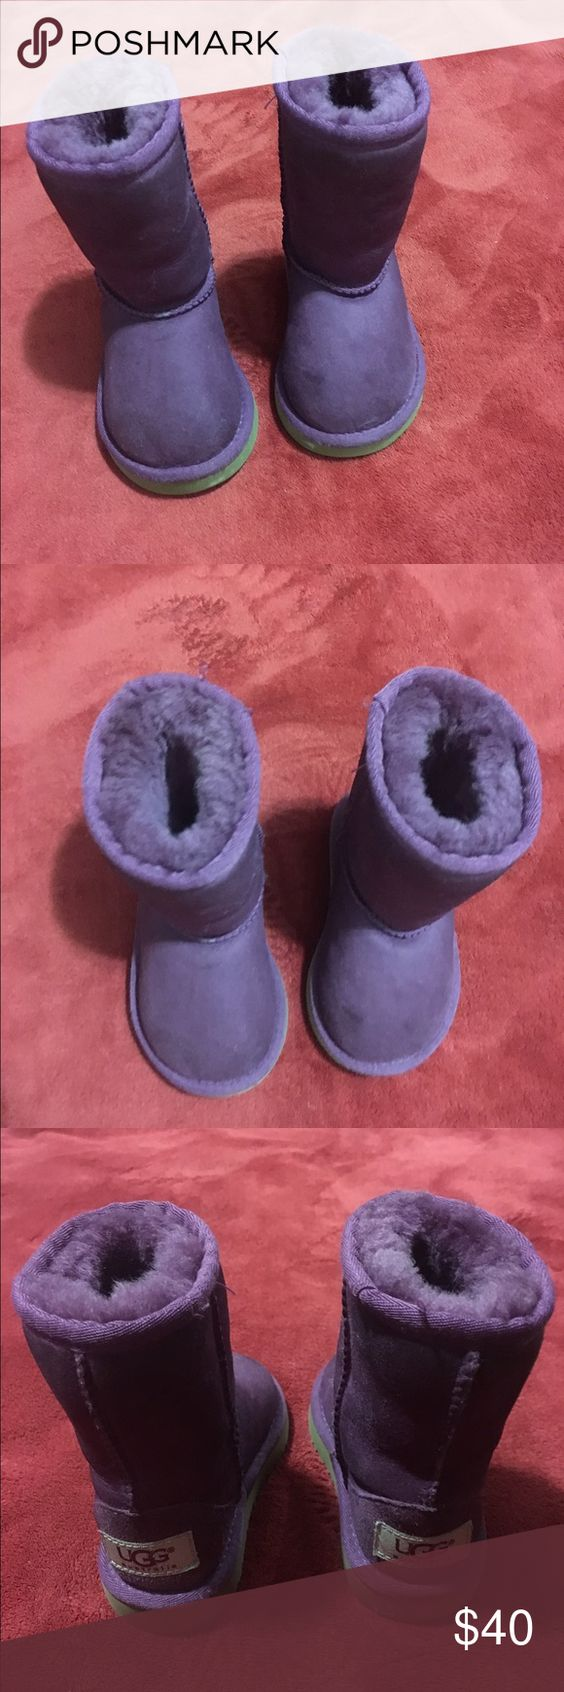 Baby Girl Ugg Boots Beautiful boots. 100% authentic. Used but are in perfect condition with a lot of life left UGG Shoes Ankle Boots & Booties